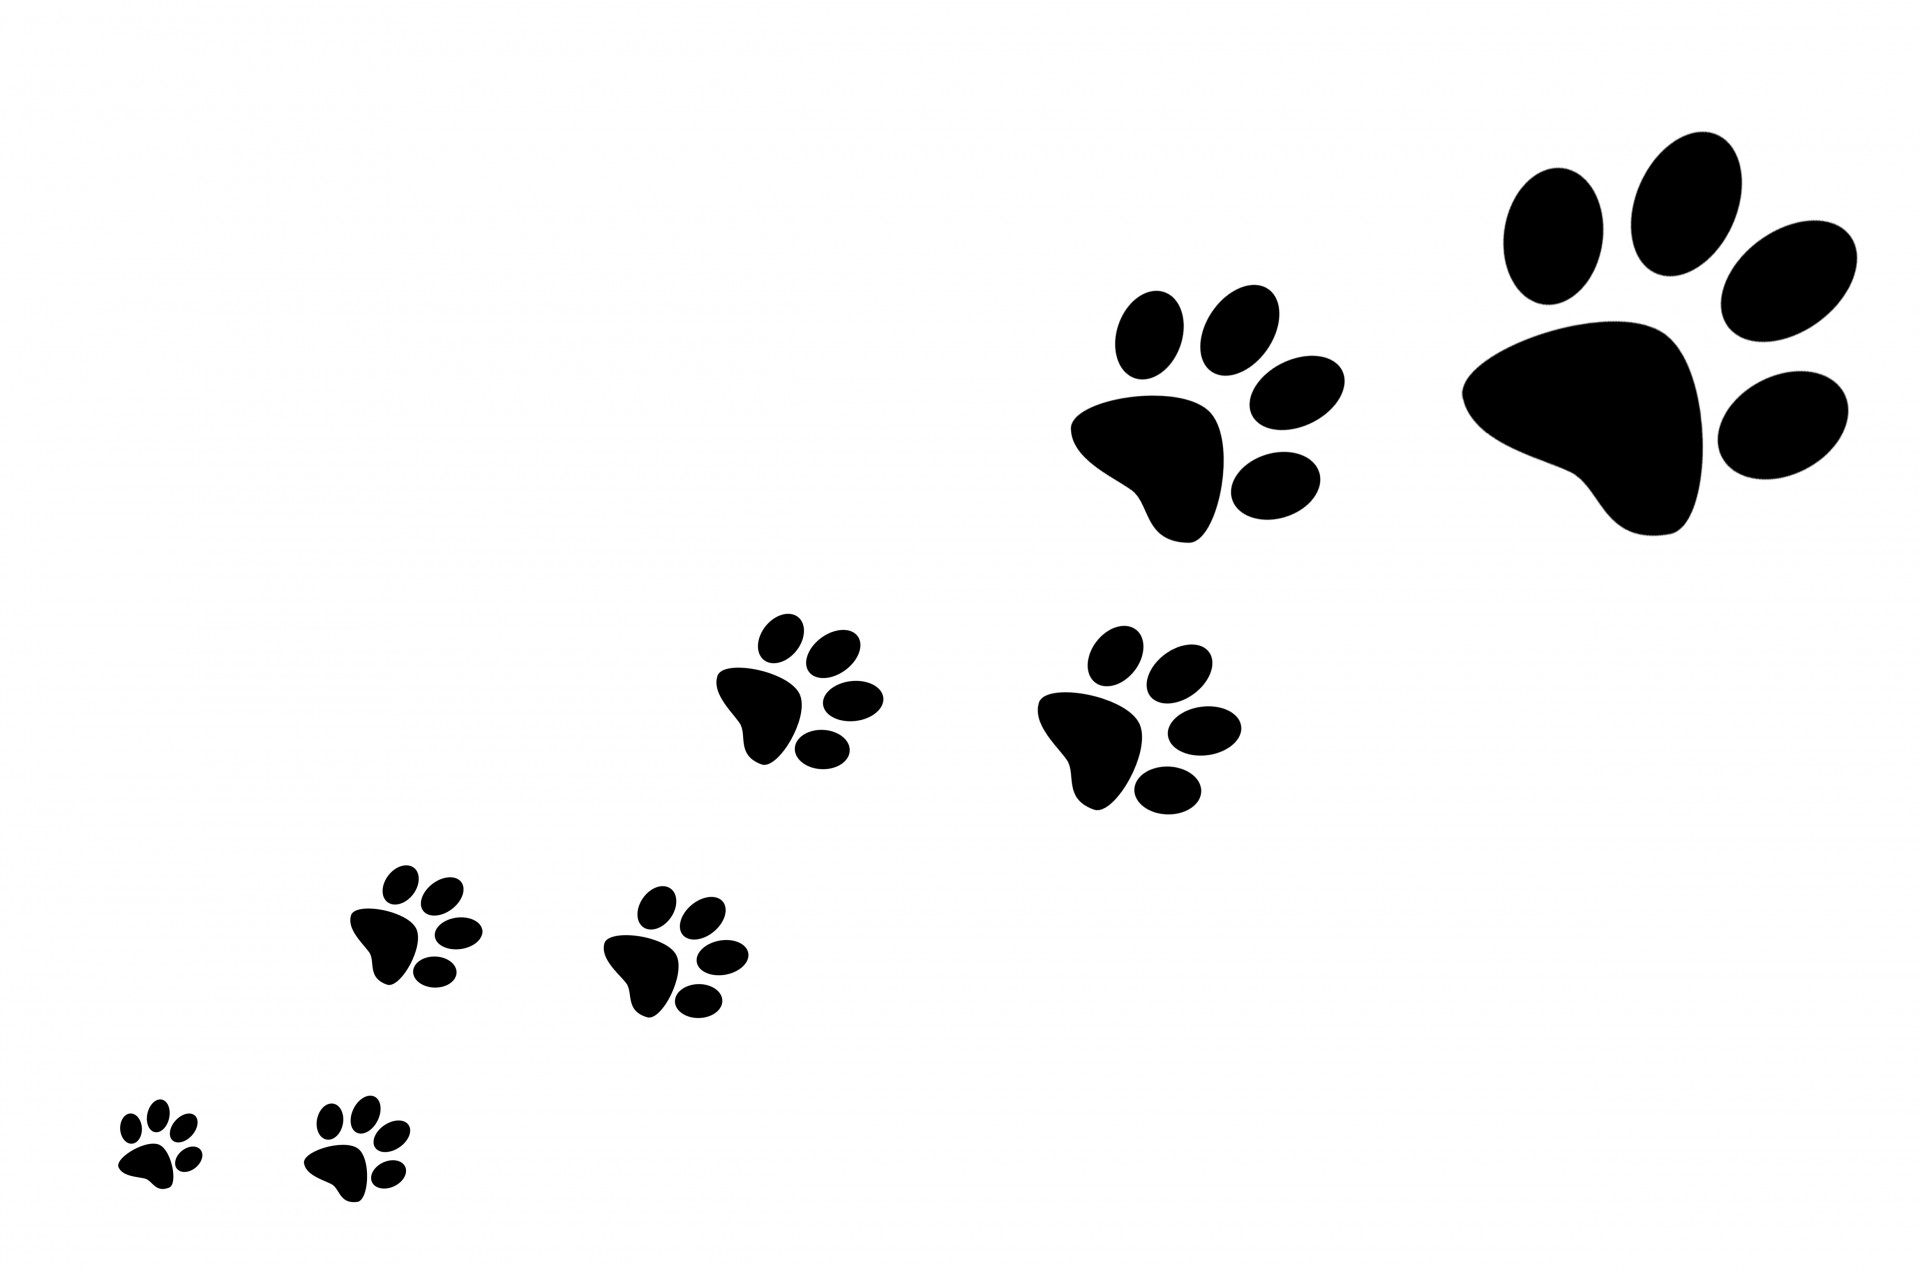 1920x1271 Solid White Paw Print No Background Clipart